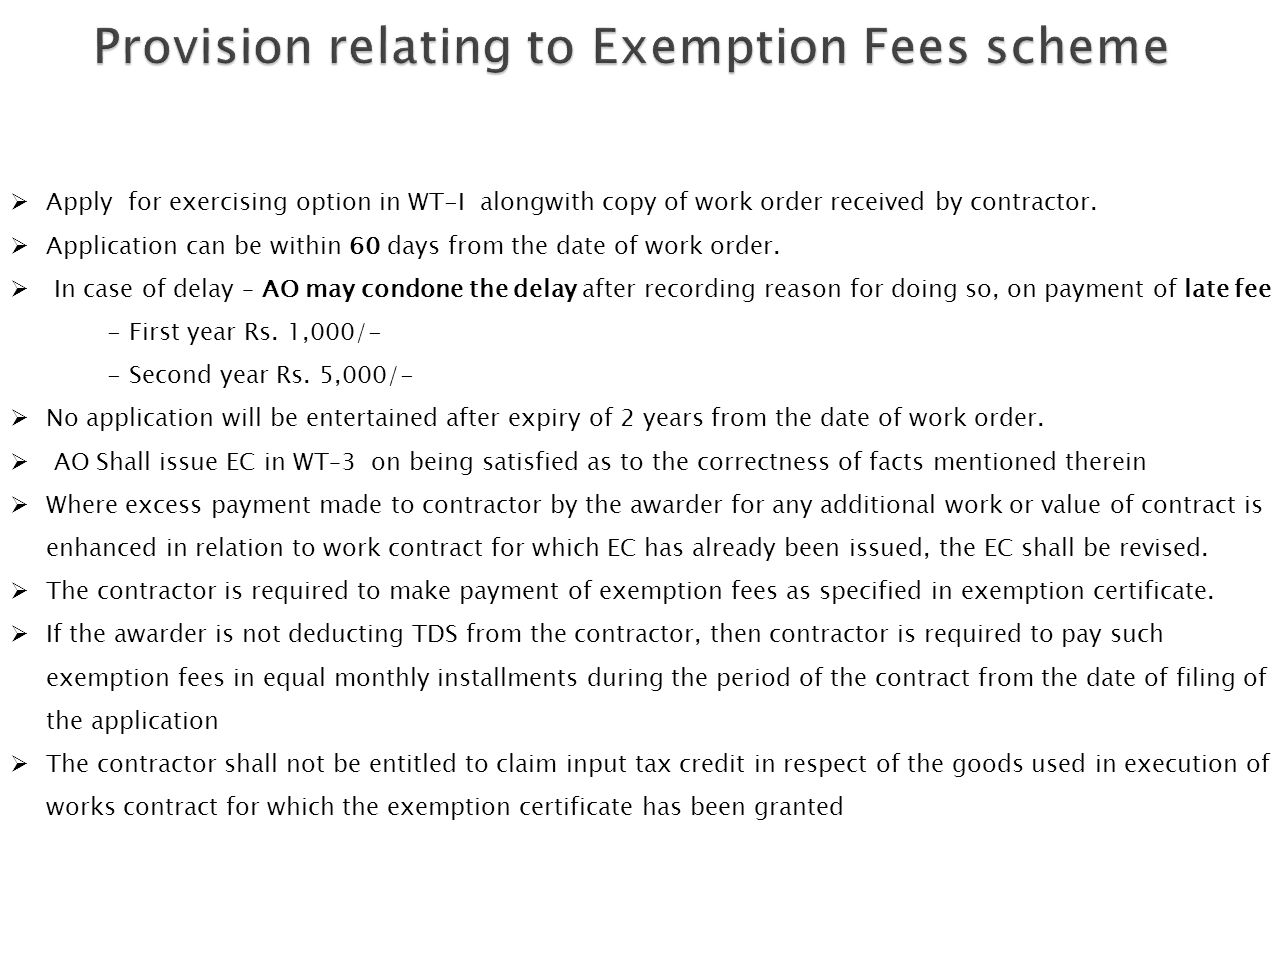 Provision relating to Exemption Fees scheme